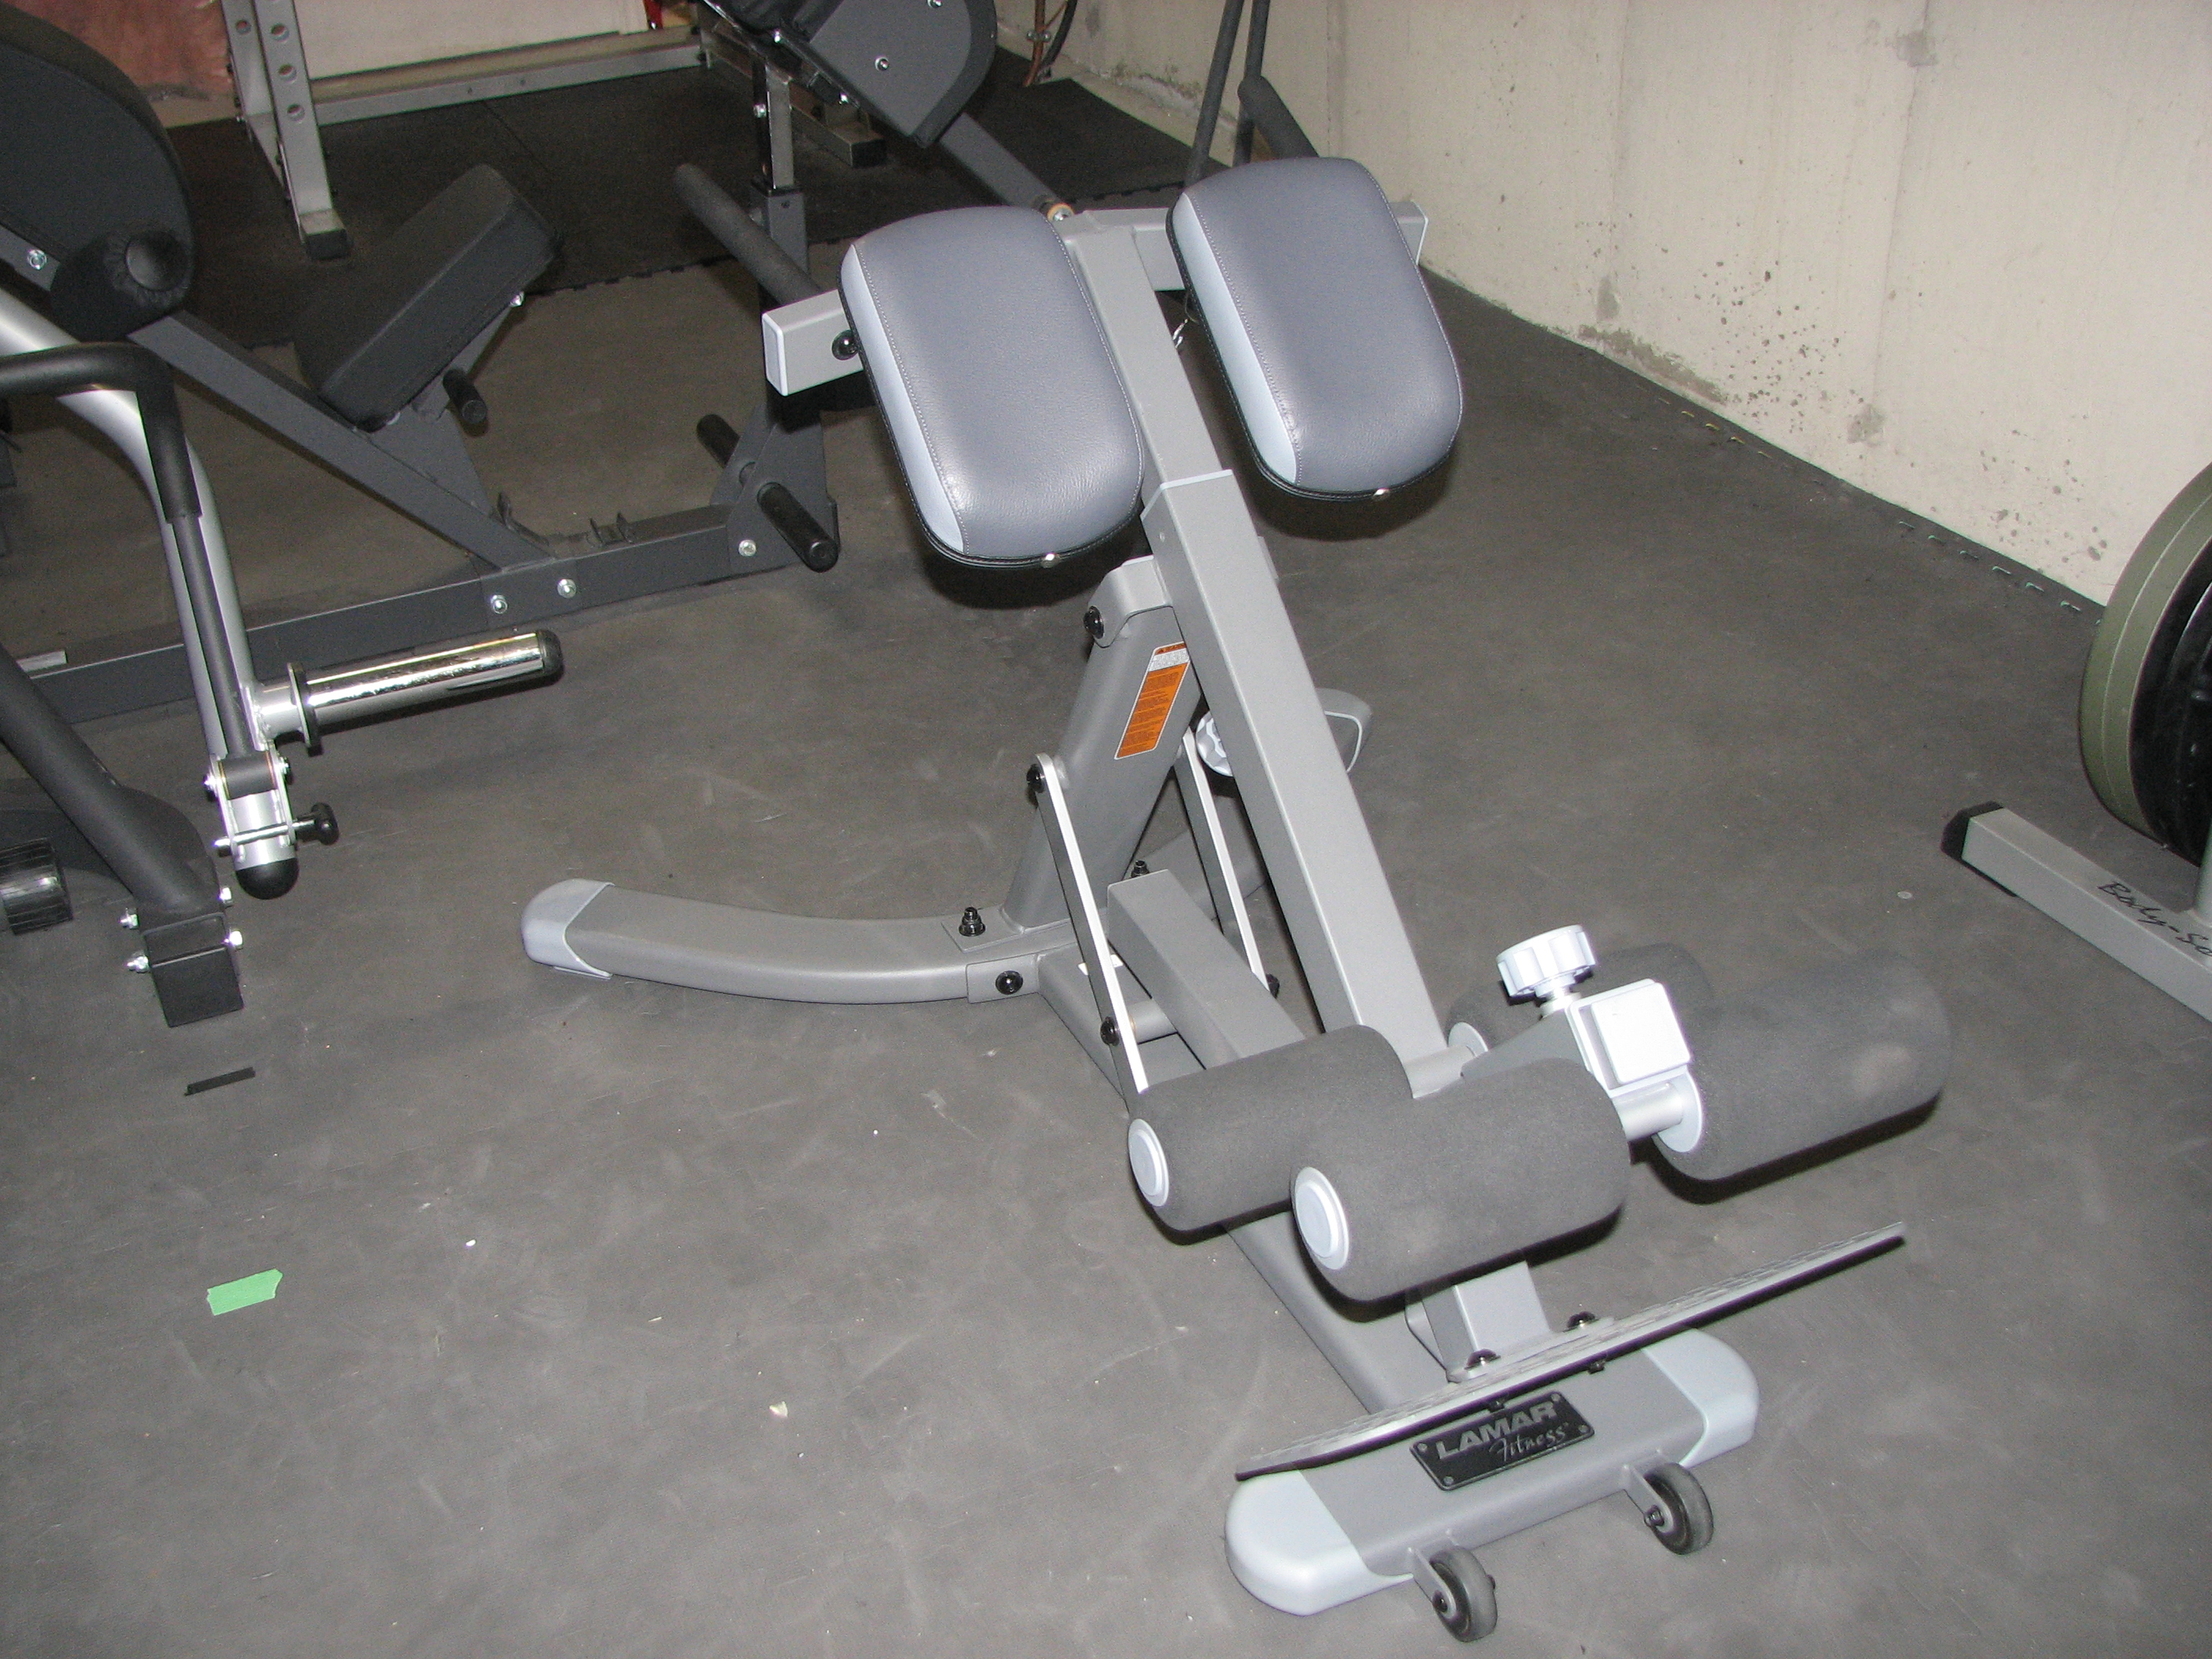 chair gym setup swing brisbane the rich dlin reader beware lamar fitness multi position hyperextension roman